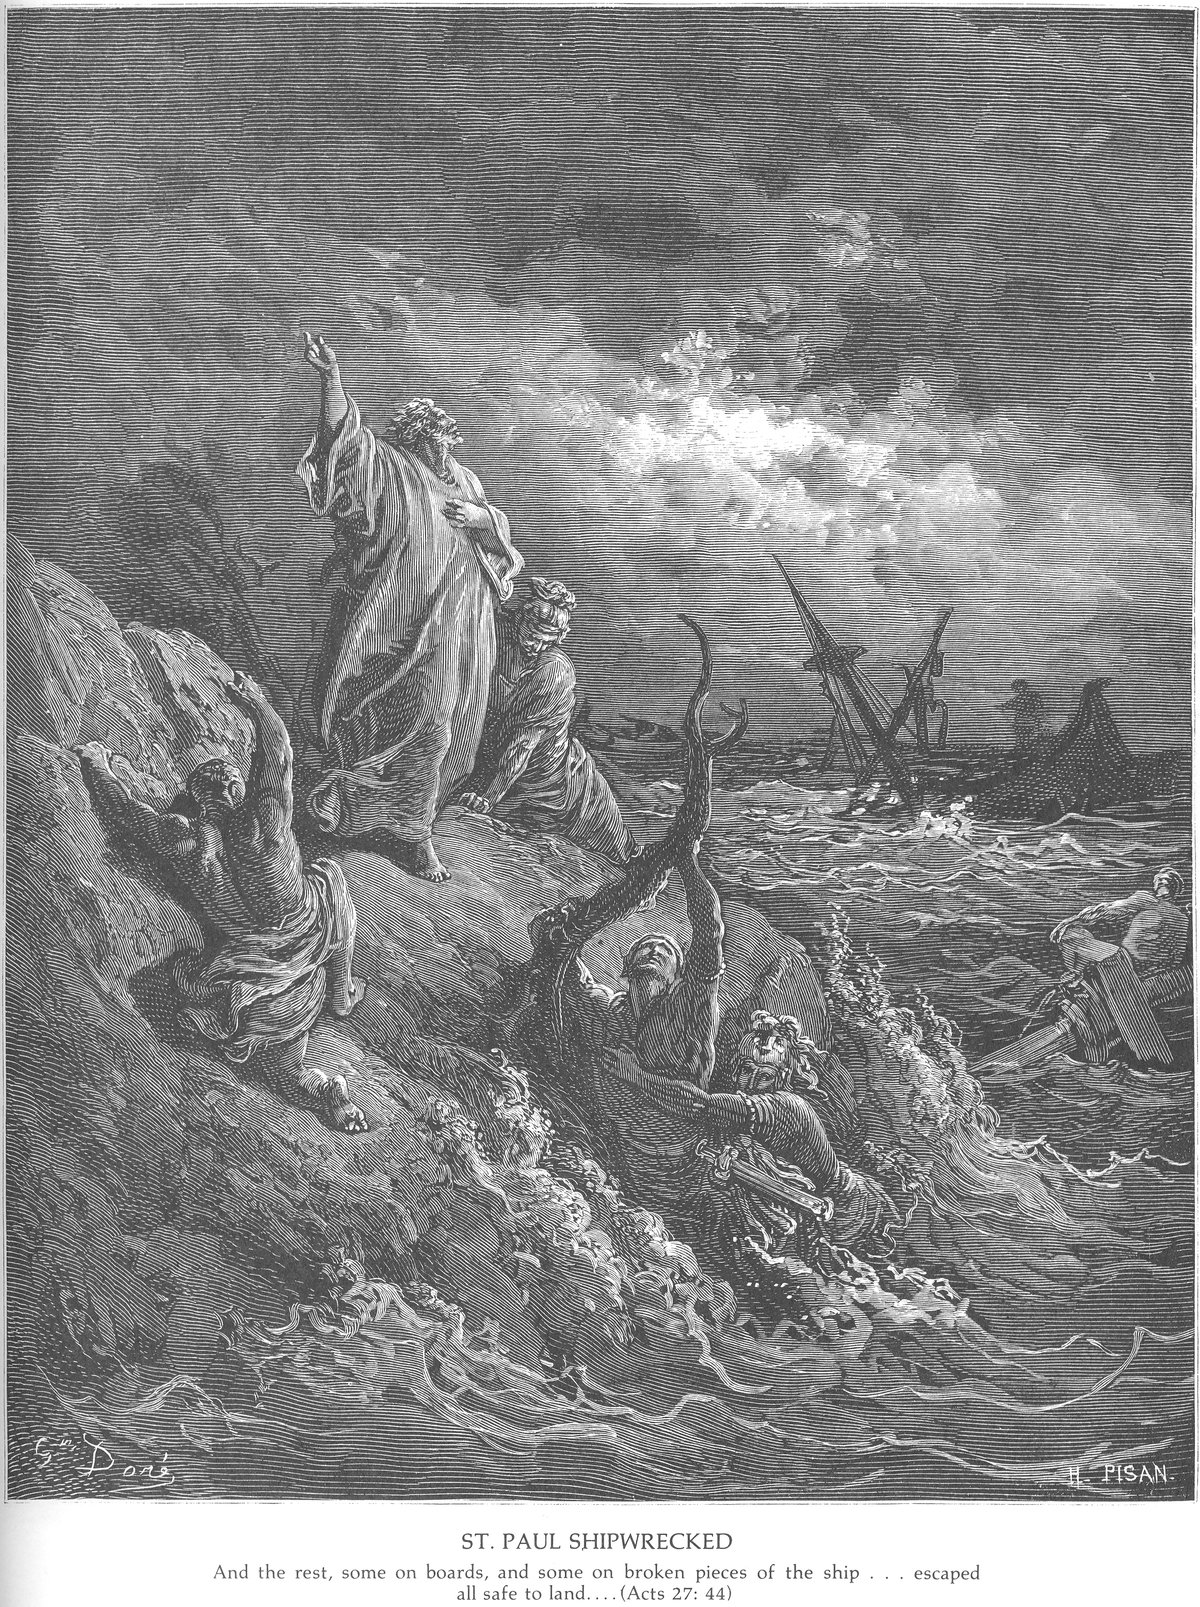 an analysis of the piece the wave by gustave dore of the menil collection Forgotten books is a london-based book publisher specializing in the restoration of old books, both fiction and non-fiction today we have 1,225,886 books available to read online, download as ebooks, or purchase in print.